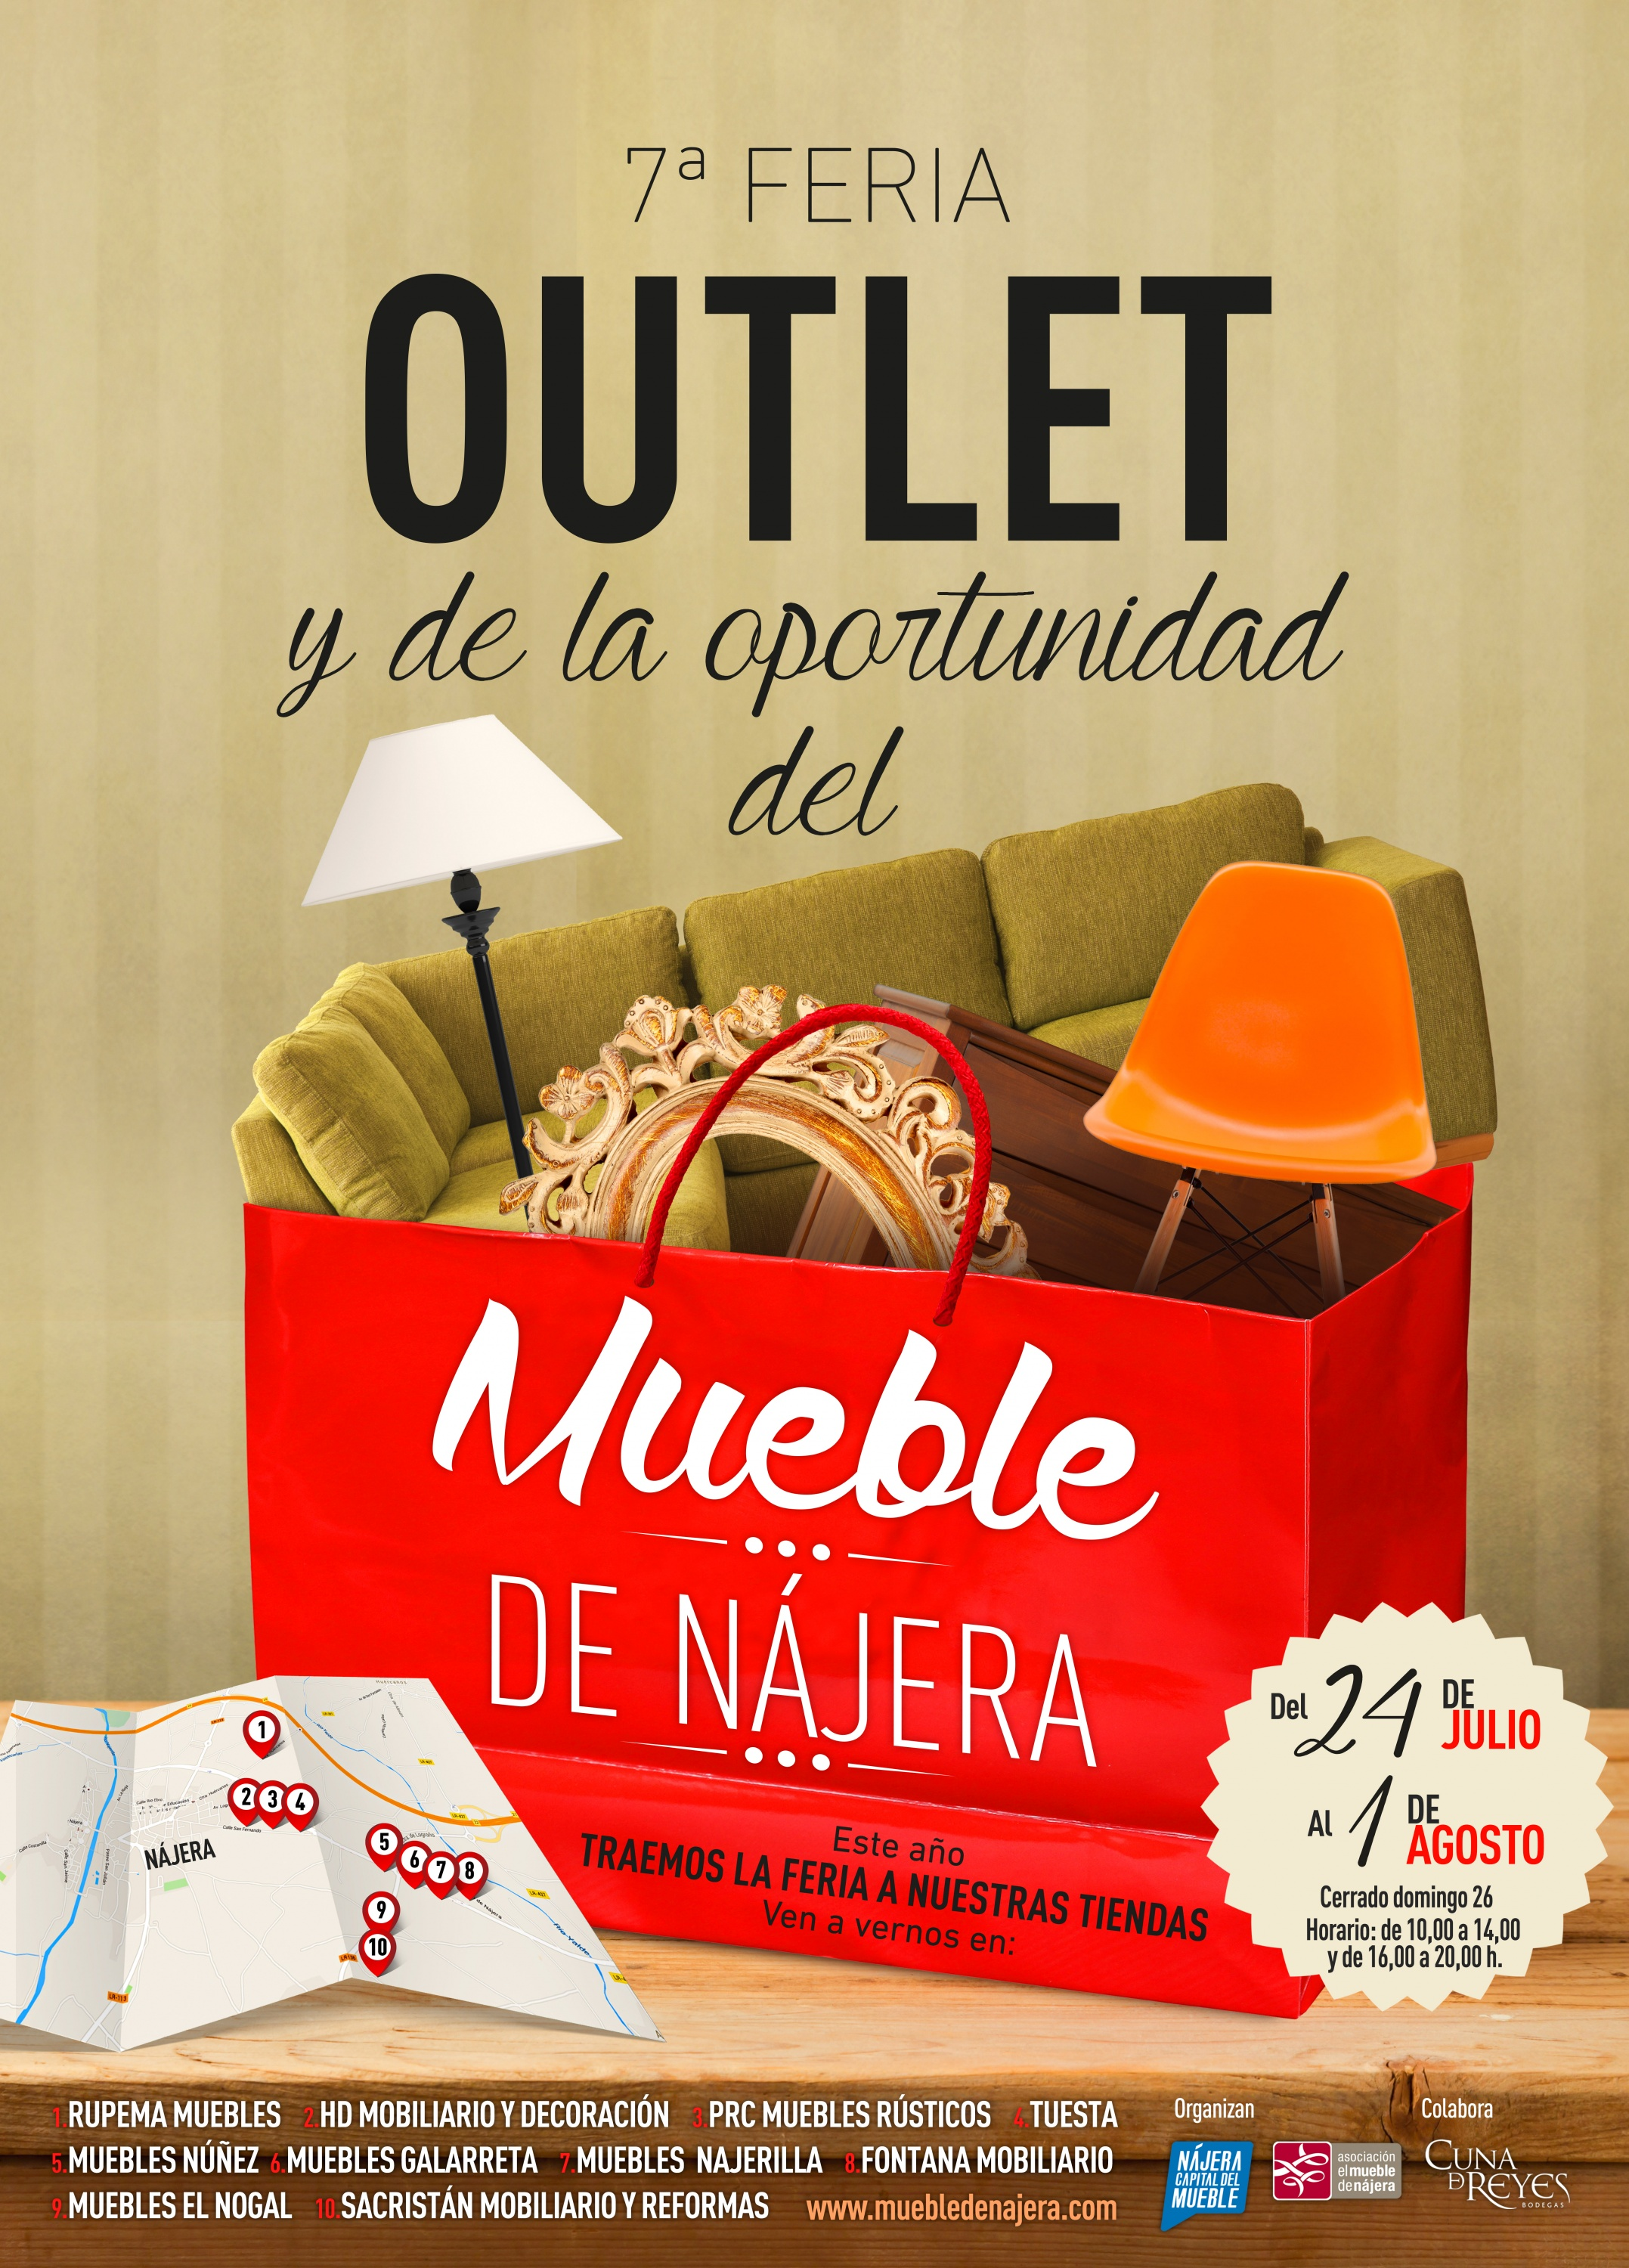 7 feria outlet del mueble de n jera ladinamo for Feria del mueble de yecla